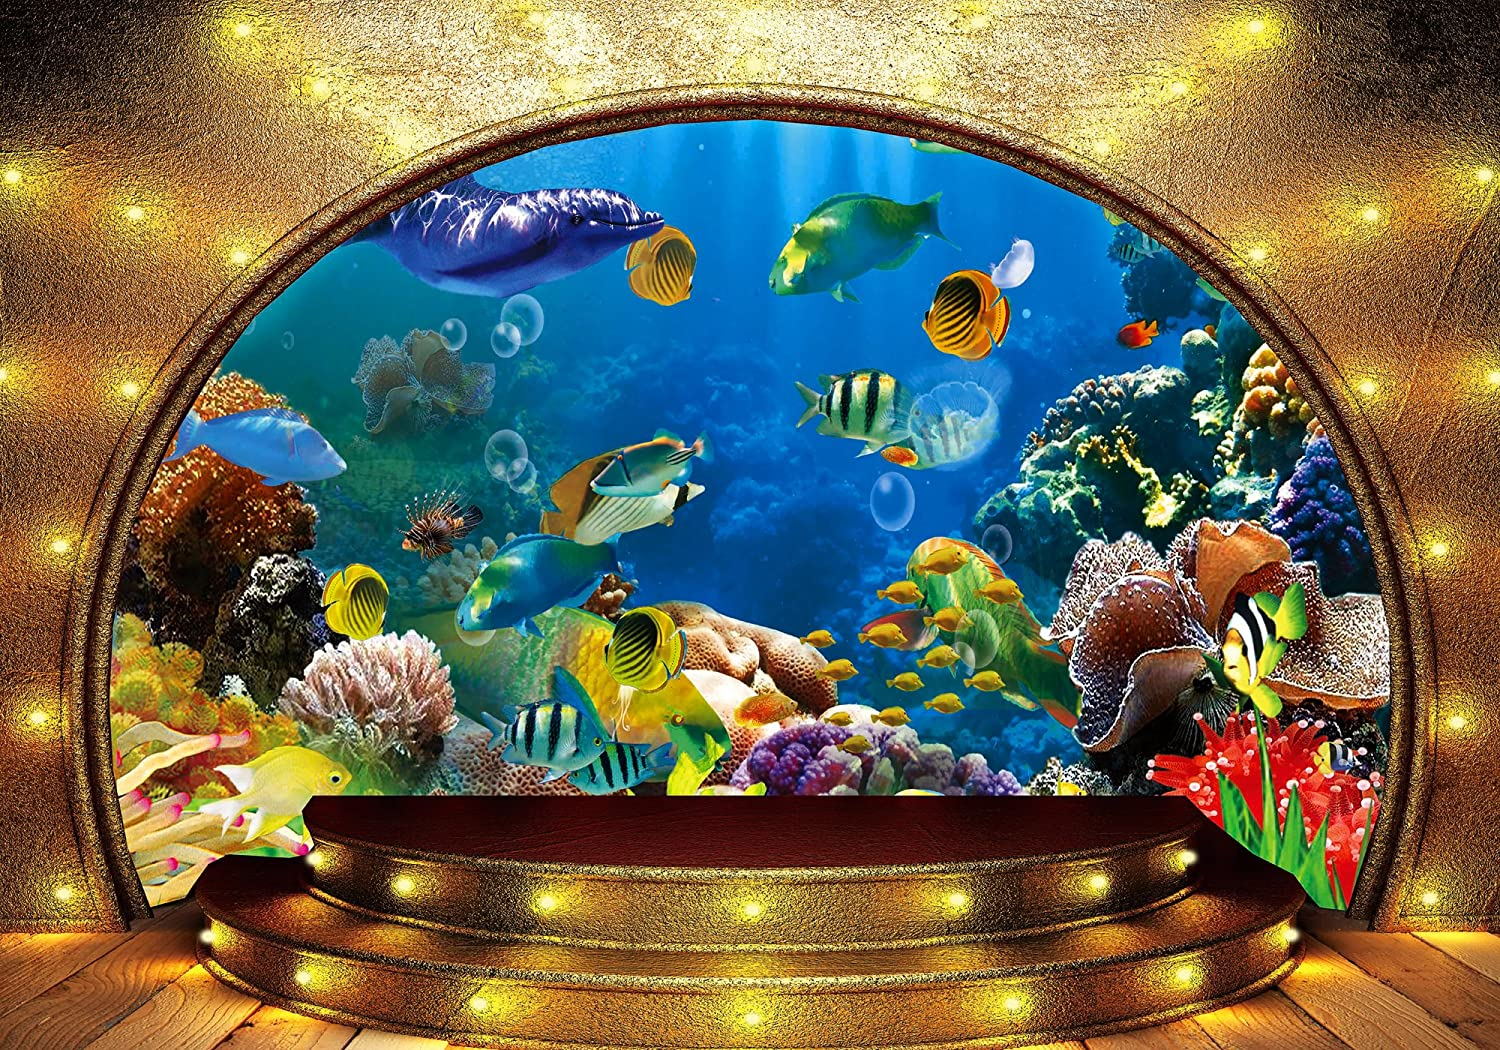 Meets 10x7ft Underwater World Backdrop Dolphin Fish Golden Dome Background Themed Party Photo Booth YouTube Backdrop HUIMT177